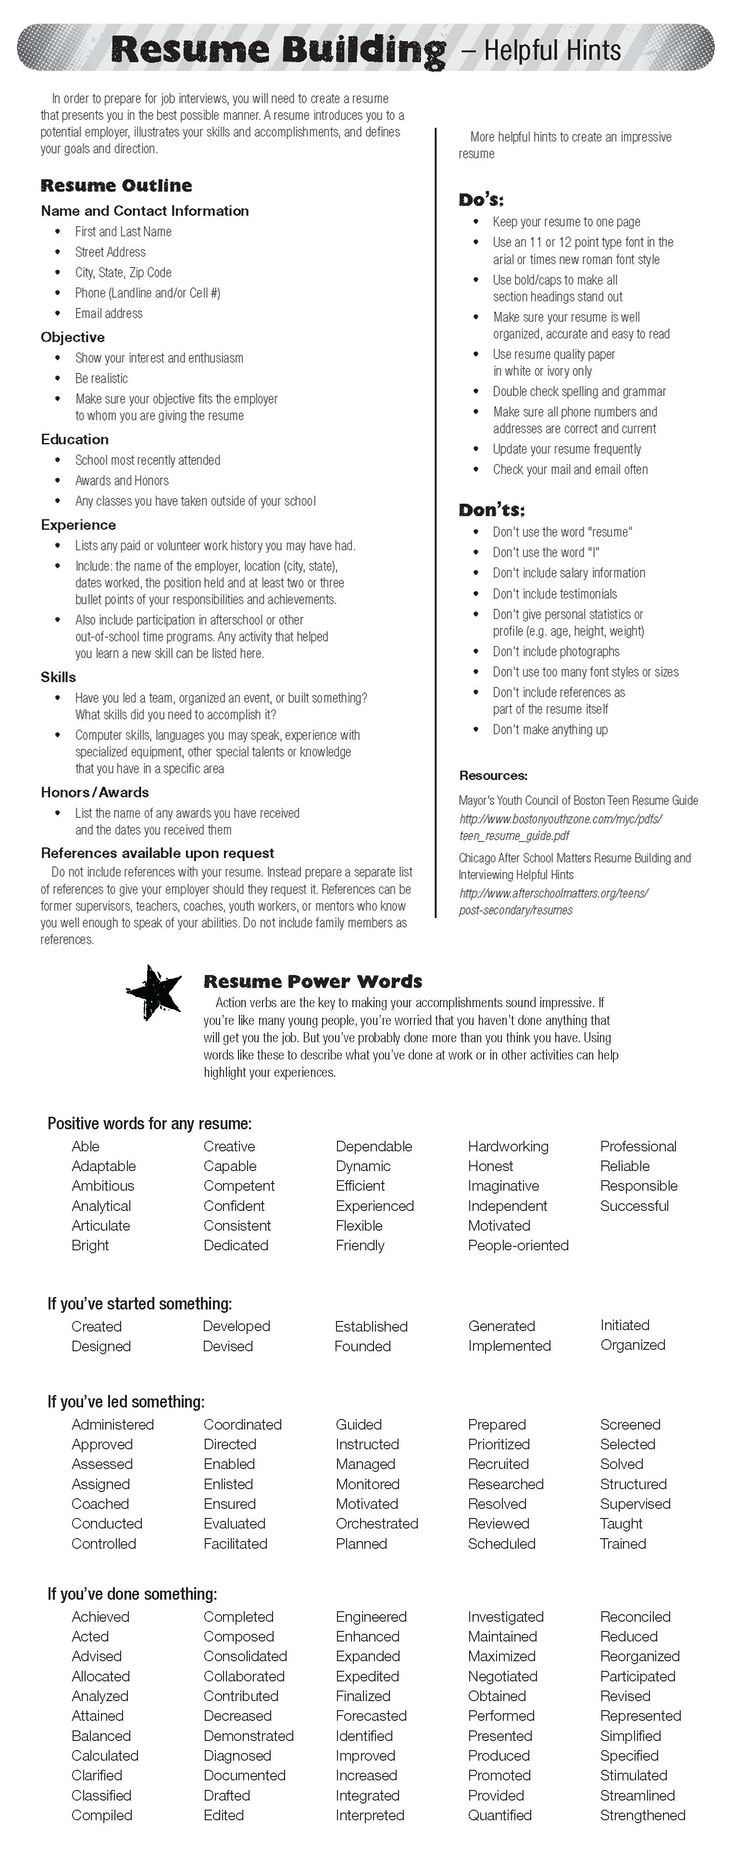 Opposenewapstandardsus  Prepossessing  Ideas About Resume On Pinterest  Cv Format Resume  With Fascinating Check Out Todays Resume Building Tips Resume Resumepowerwords With Delectable Misha Collins Resume Also Download Free Resume Templates For Word In Addition Account Executive Resume Sample And How To Make A Resume No Experience As Well As Free Executive Resume Templates Additionally Entry Level Rn Resume From Pinterestcom With Opposenewapstandardsus  Fascinating  Ideas About Resume On Pinterest  Cv Format Resume  With Delectable Check Out Todays Resume Building Tips Resume Resumepowerwords And Prepossessing Misha Collins Resume Also Download Free Resume Templates For Word In Addition Account Executive Resume Sample From Pinterestcom